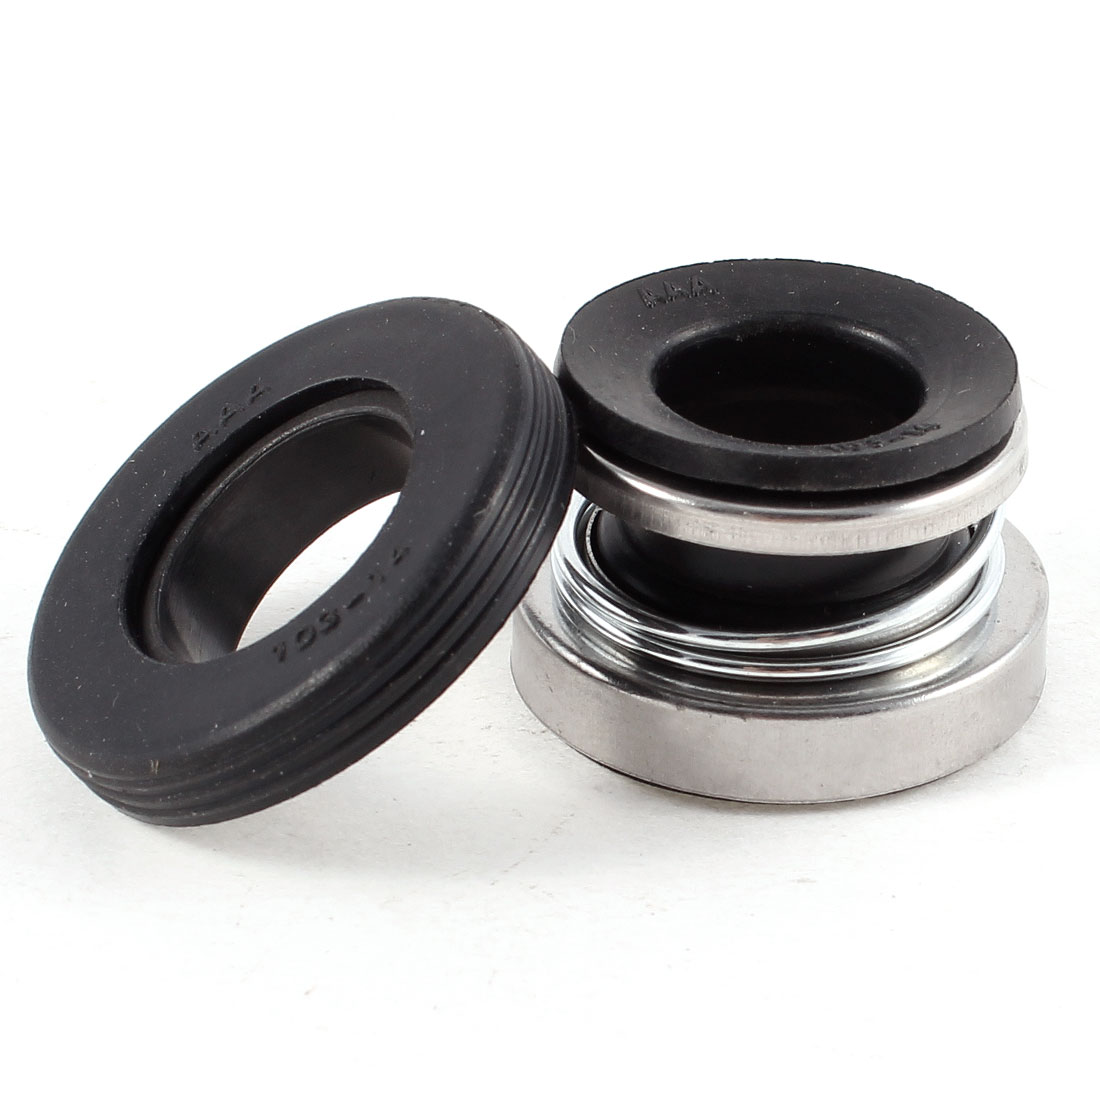 14mm x 30mm x 25mm Rubber Bellows Pump Shaft Sealing Mechanical Seal